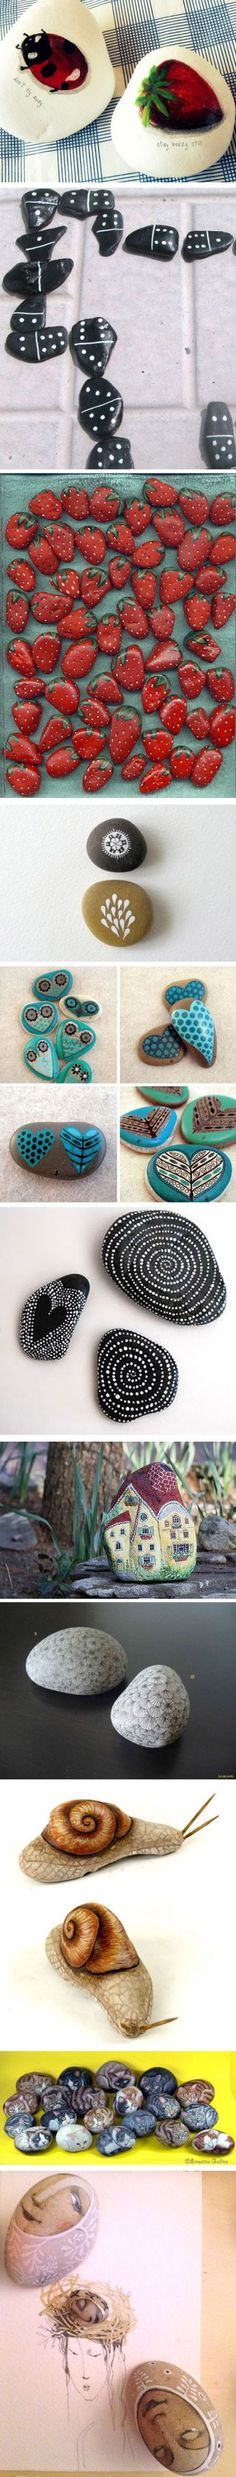 knew ive been saving rocks for years for some reason, now ive somtin to do-lol      Gift Ideas for Poor Creative Souls (13)